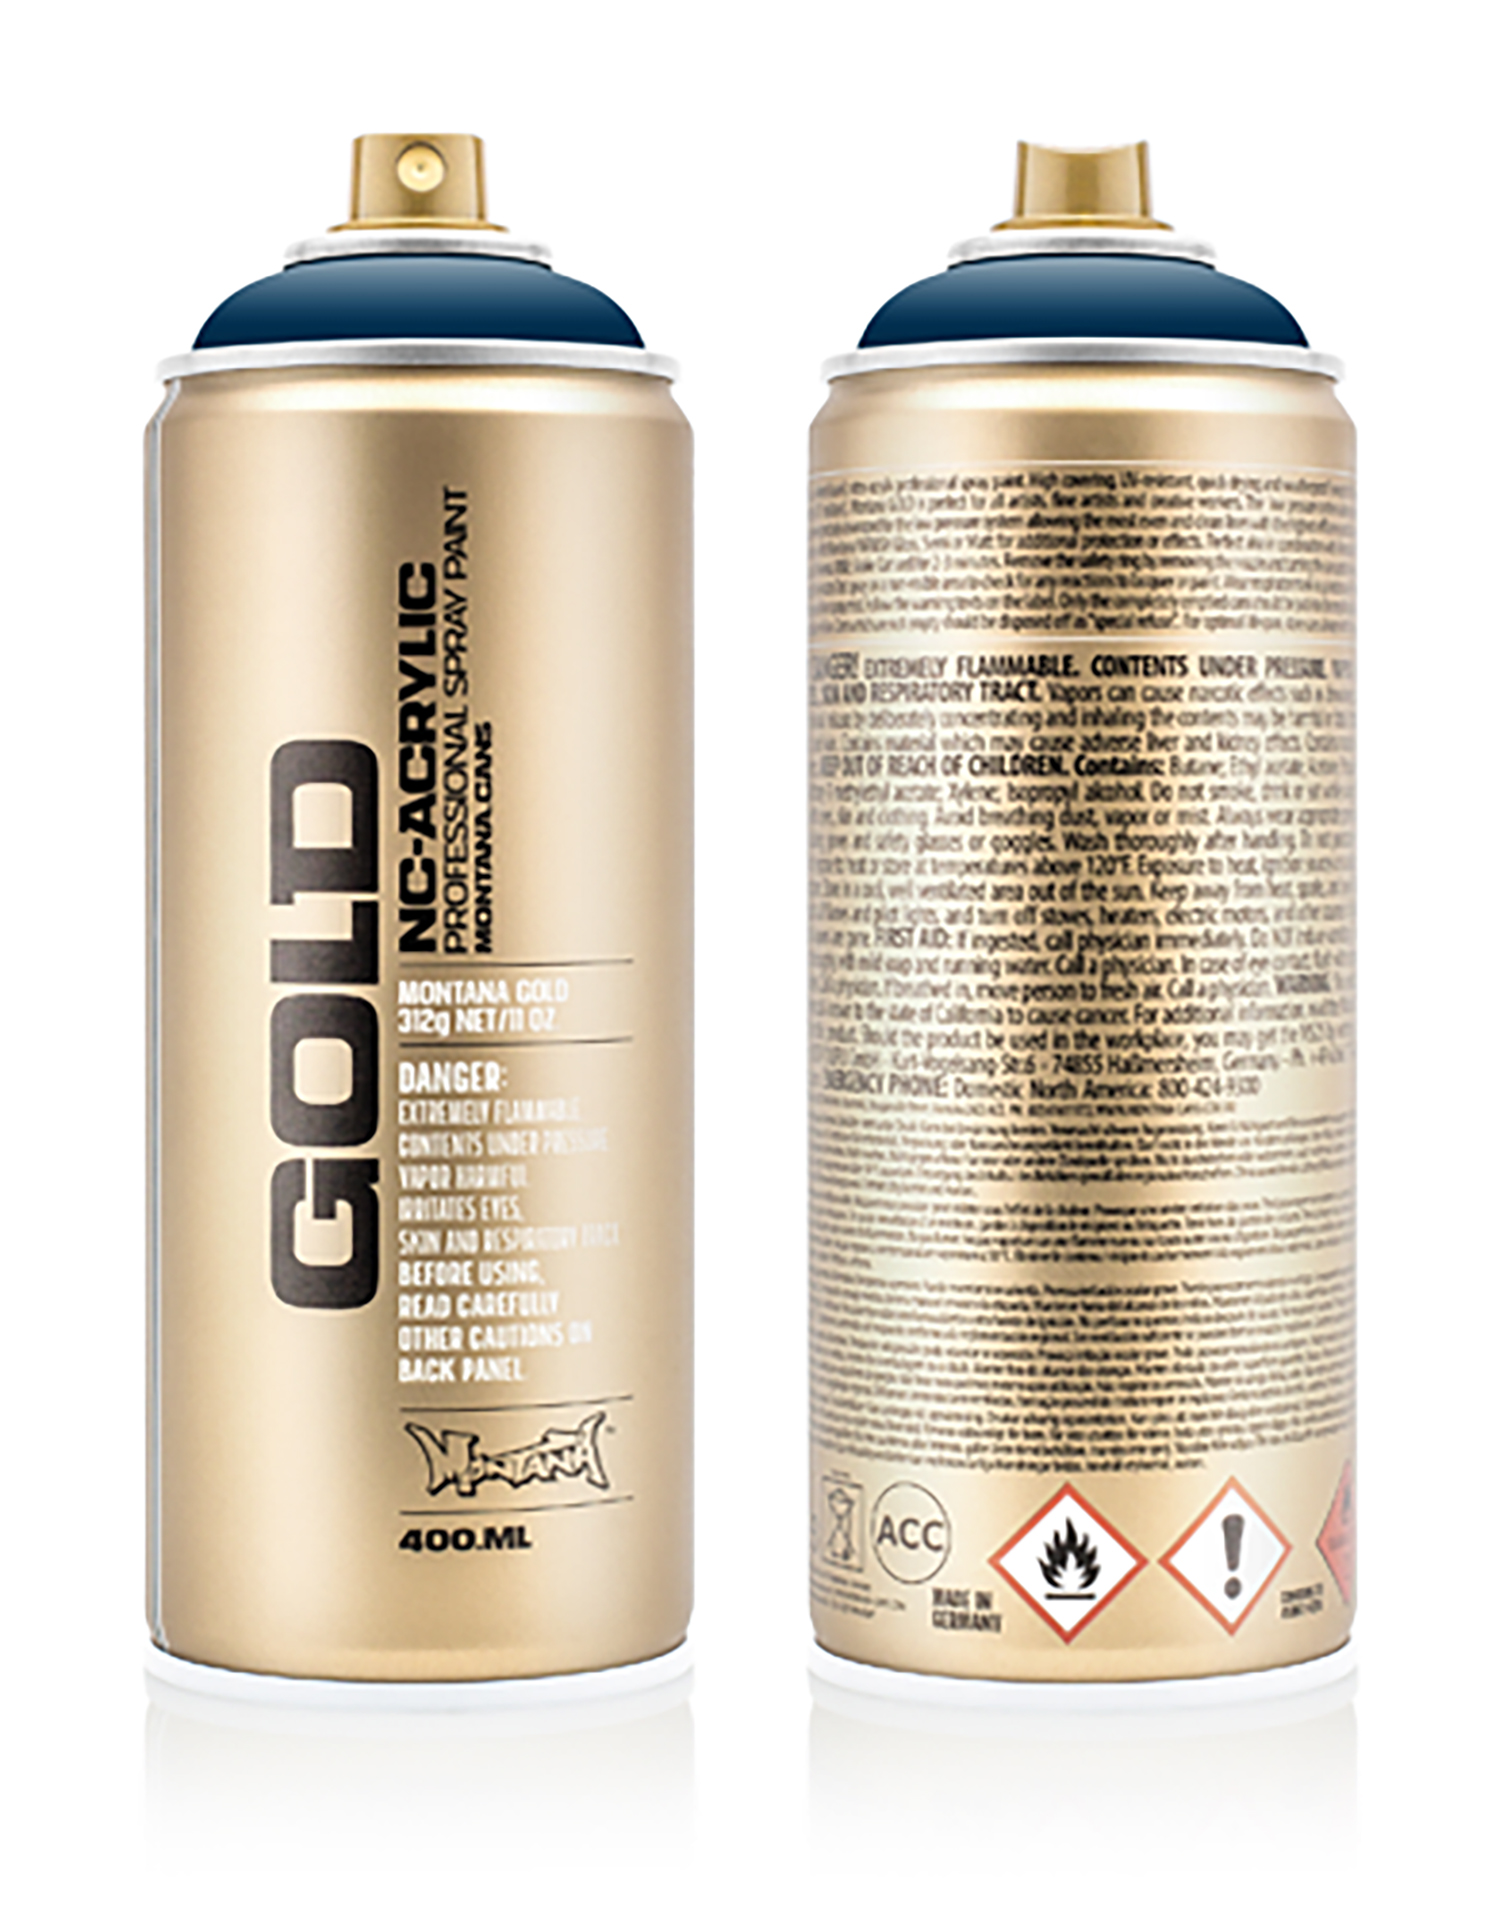 MONTANA-GOLD-SPRAY-400ML-G-5085